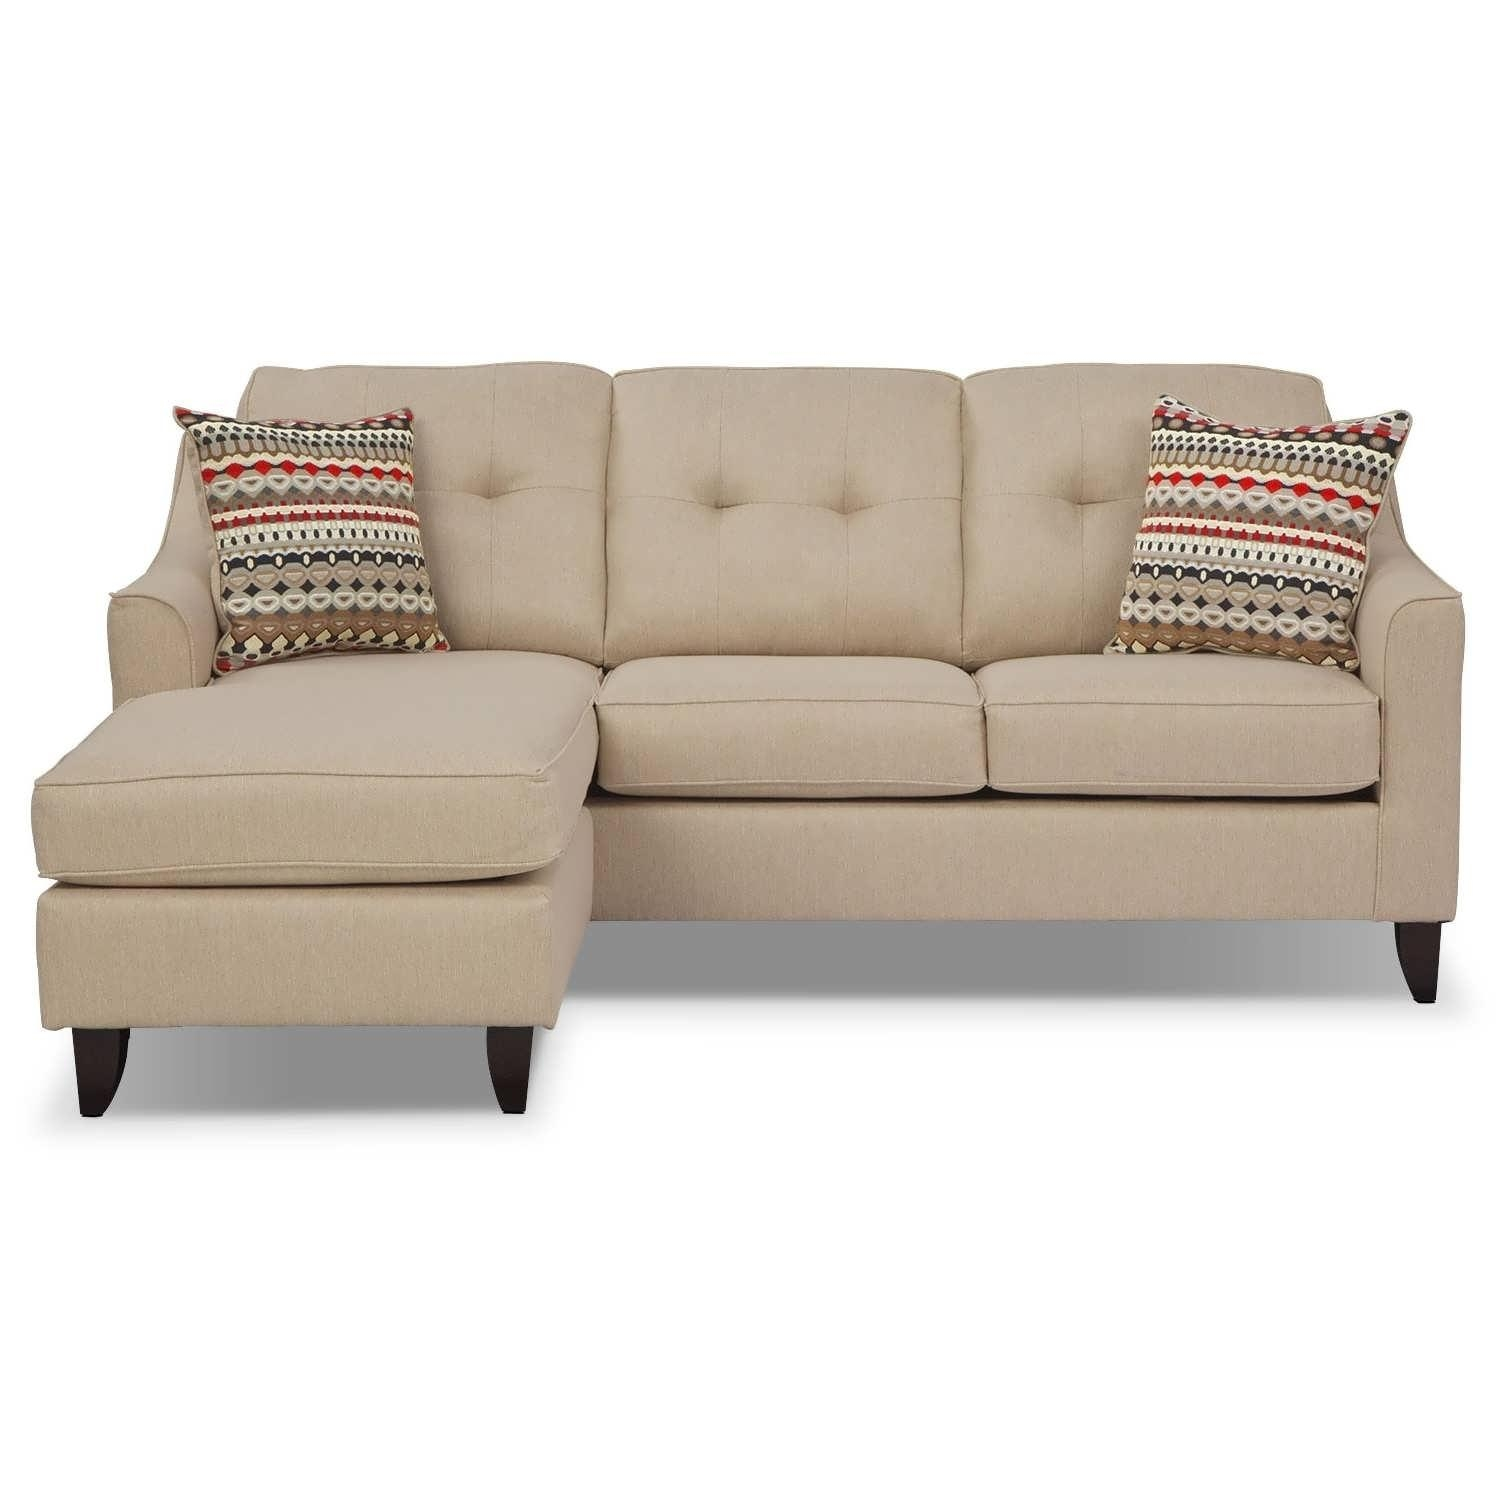 Bedroom Furniture Sets : Sofa Beds Full Size Sofa Bed Pull Out Inside Full Size Sofa Sleepers (View 19 of 21)